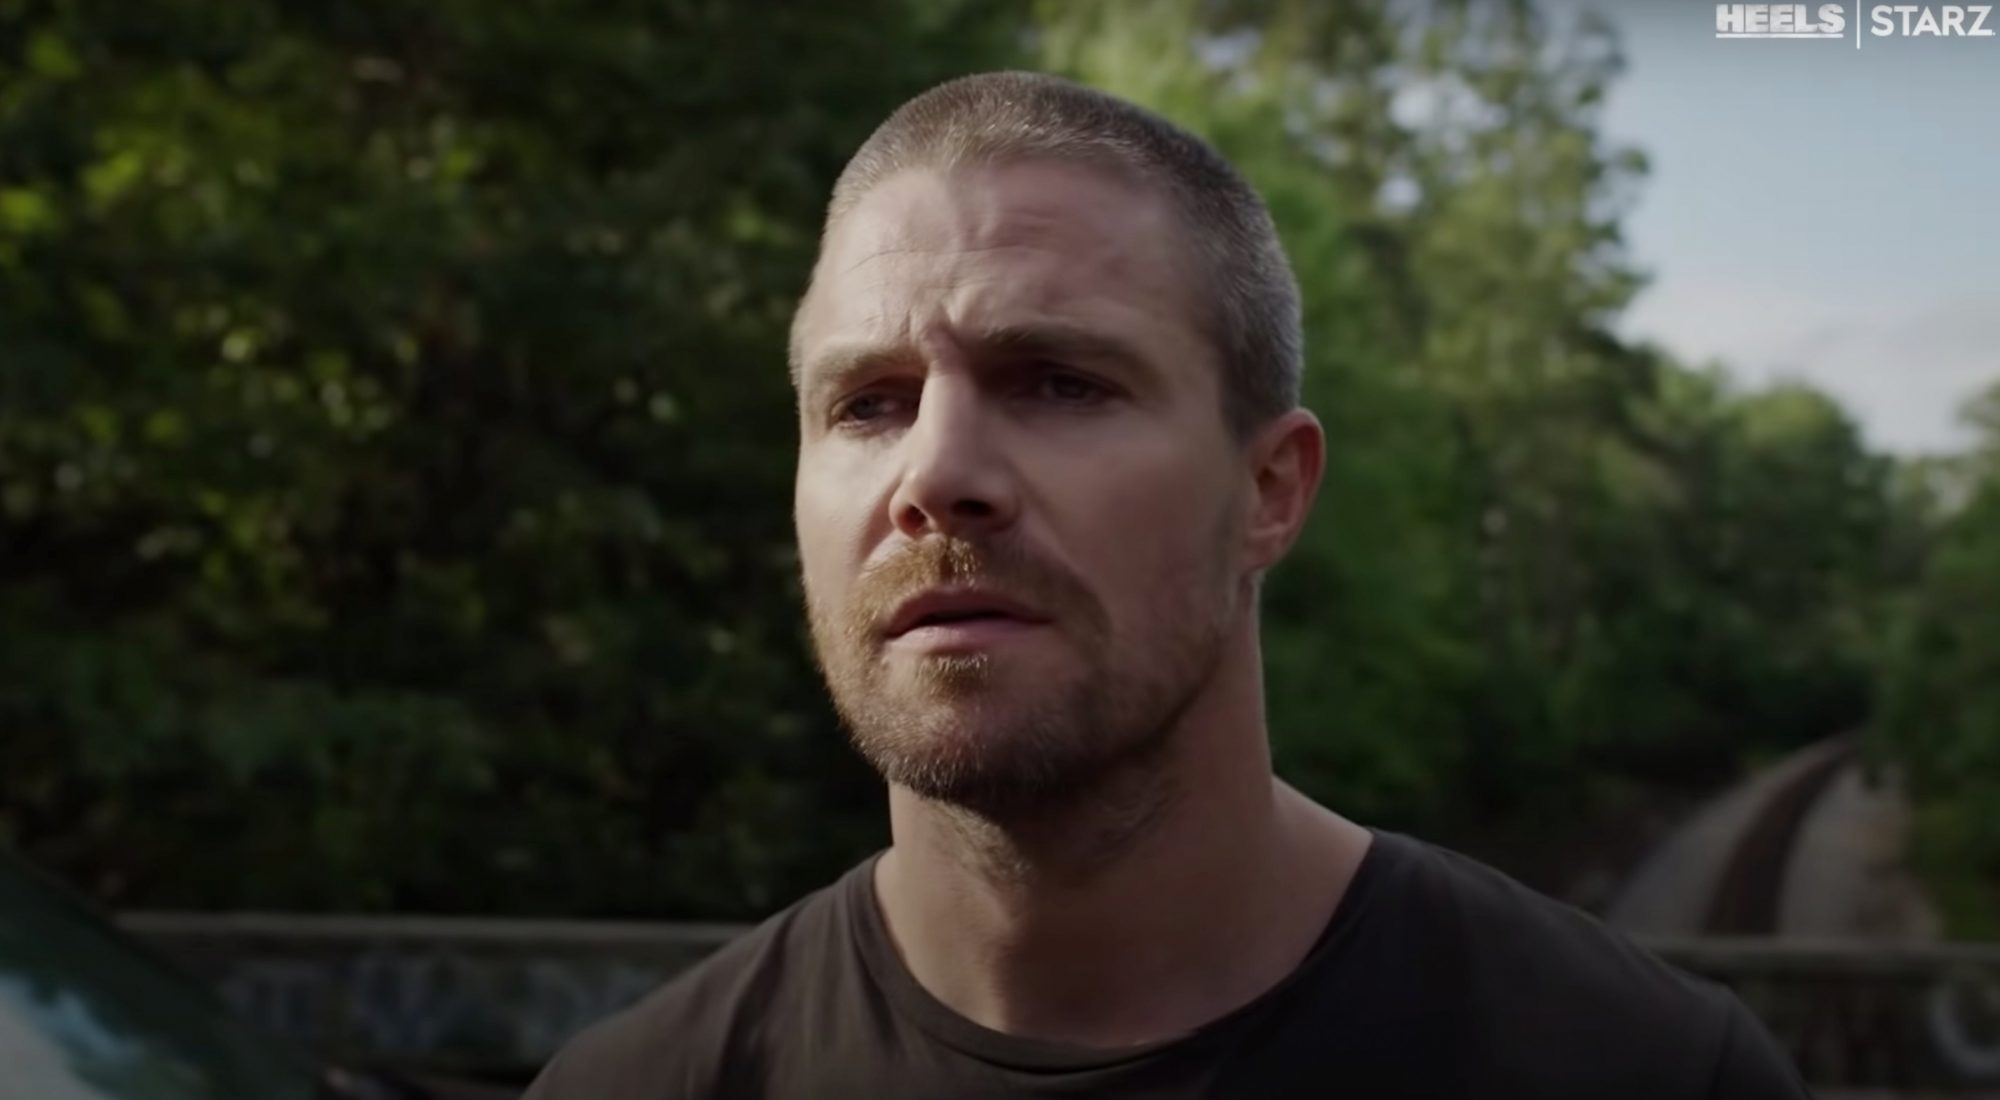 Stephen Amell and Alexander Ludwig Star as Brothers in Conflict in Trailer for Starz's Heels